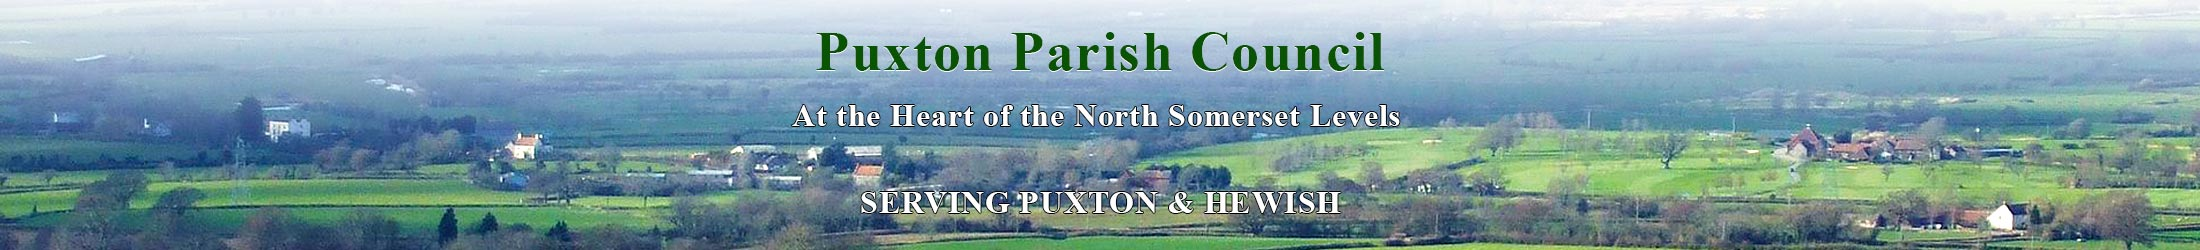 Header Image for Puxton Parish Council